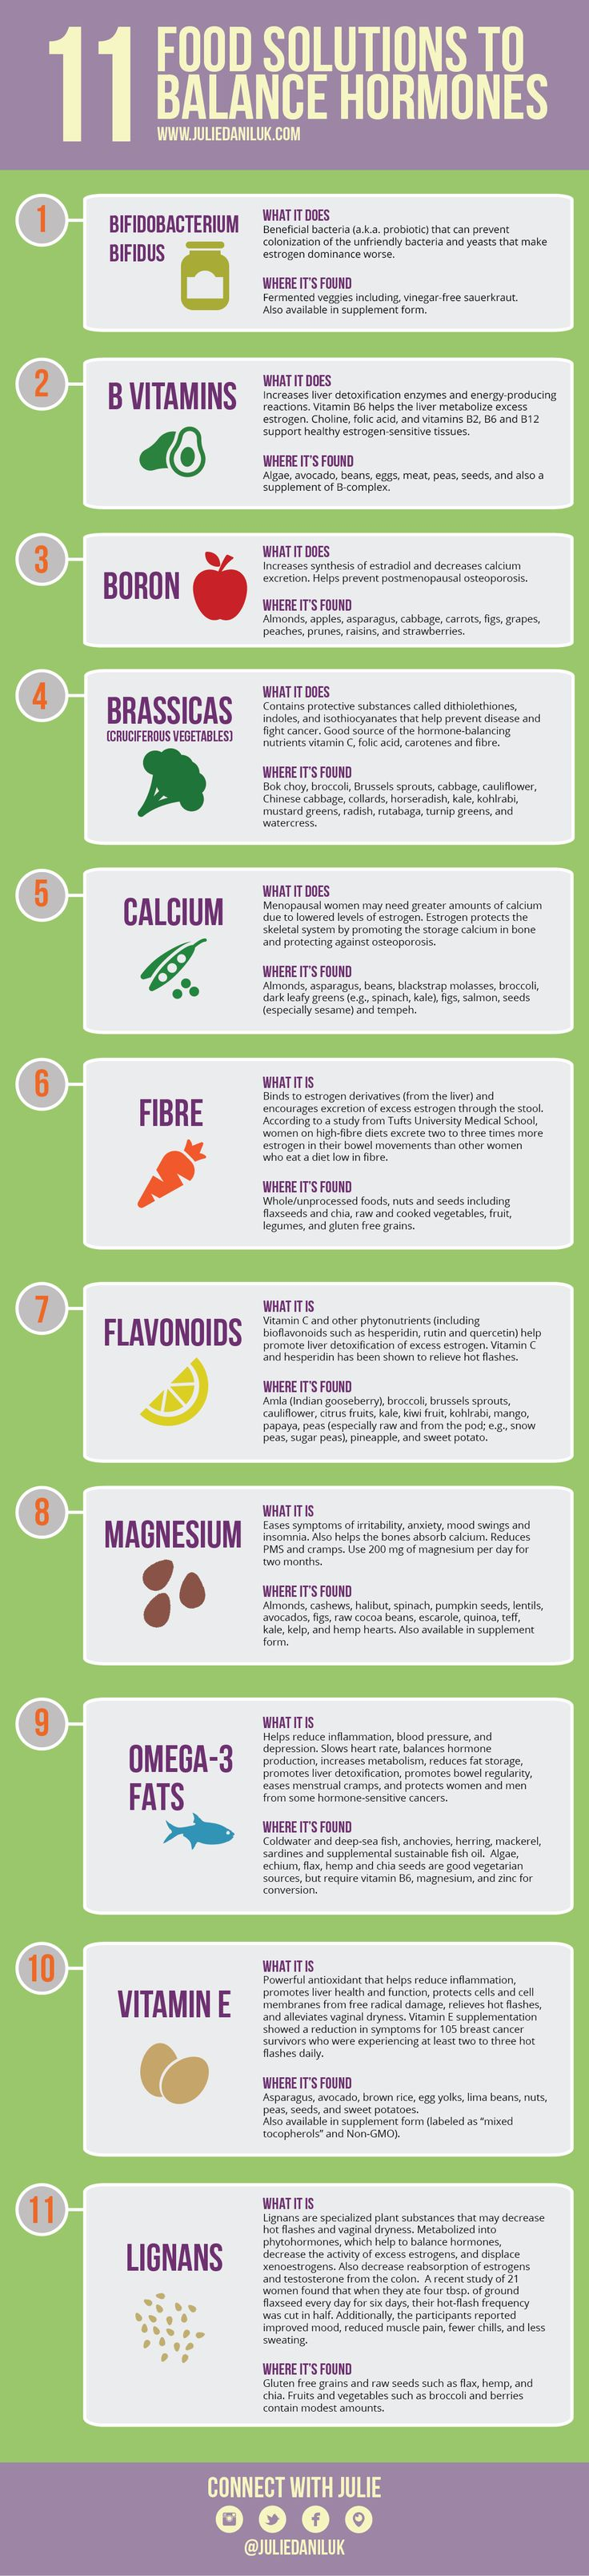 11 Food Solutions To Balance Your Hormones Infographic | #MealsThatHeal